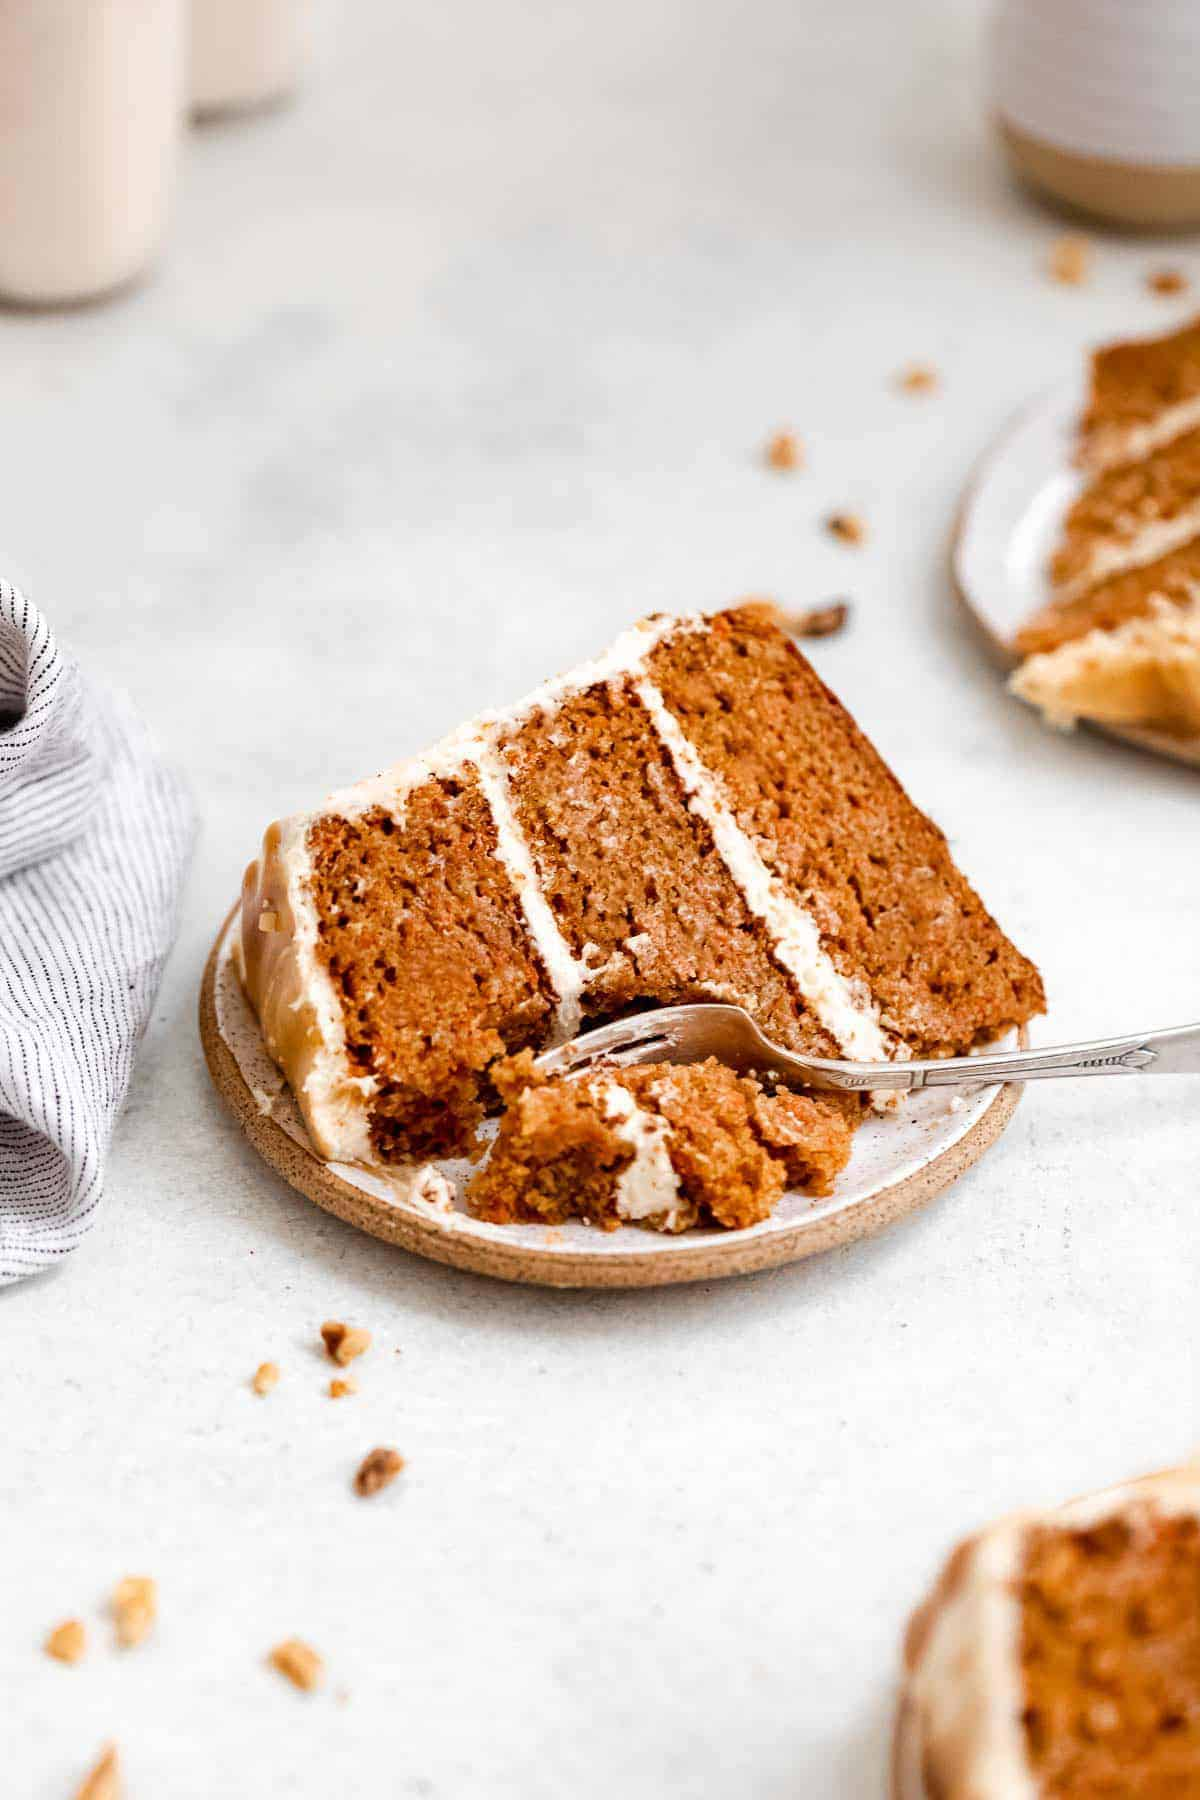 three plates with slices of the gluten free carrot cake with a fork on the side